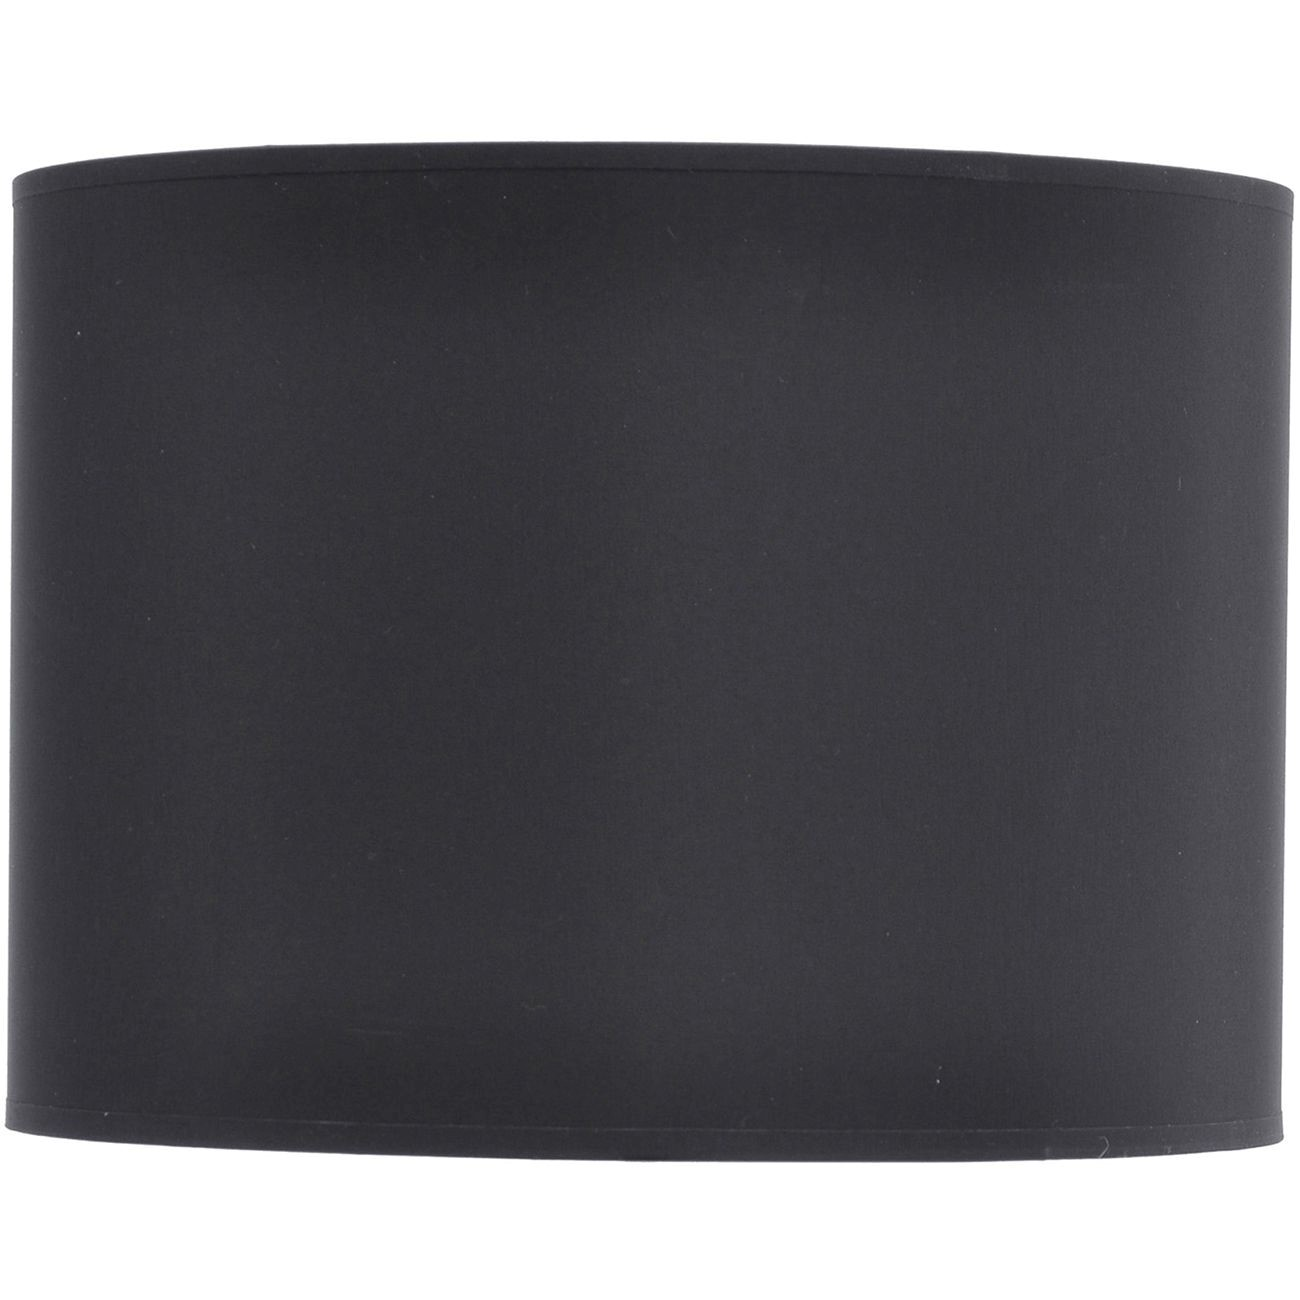 "Drum 16"" shade in black with silver lining"